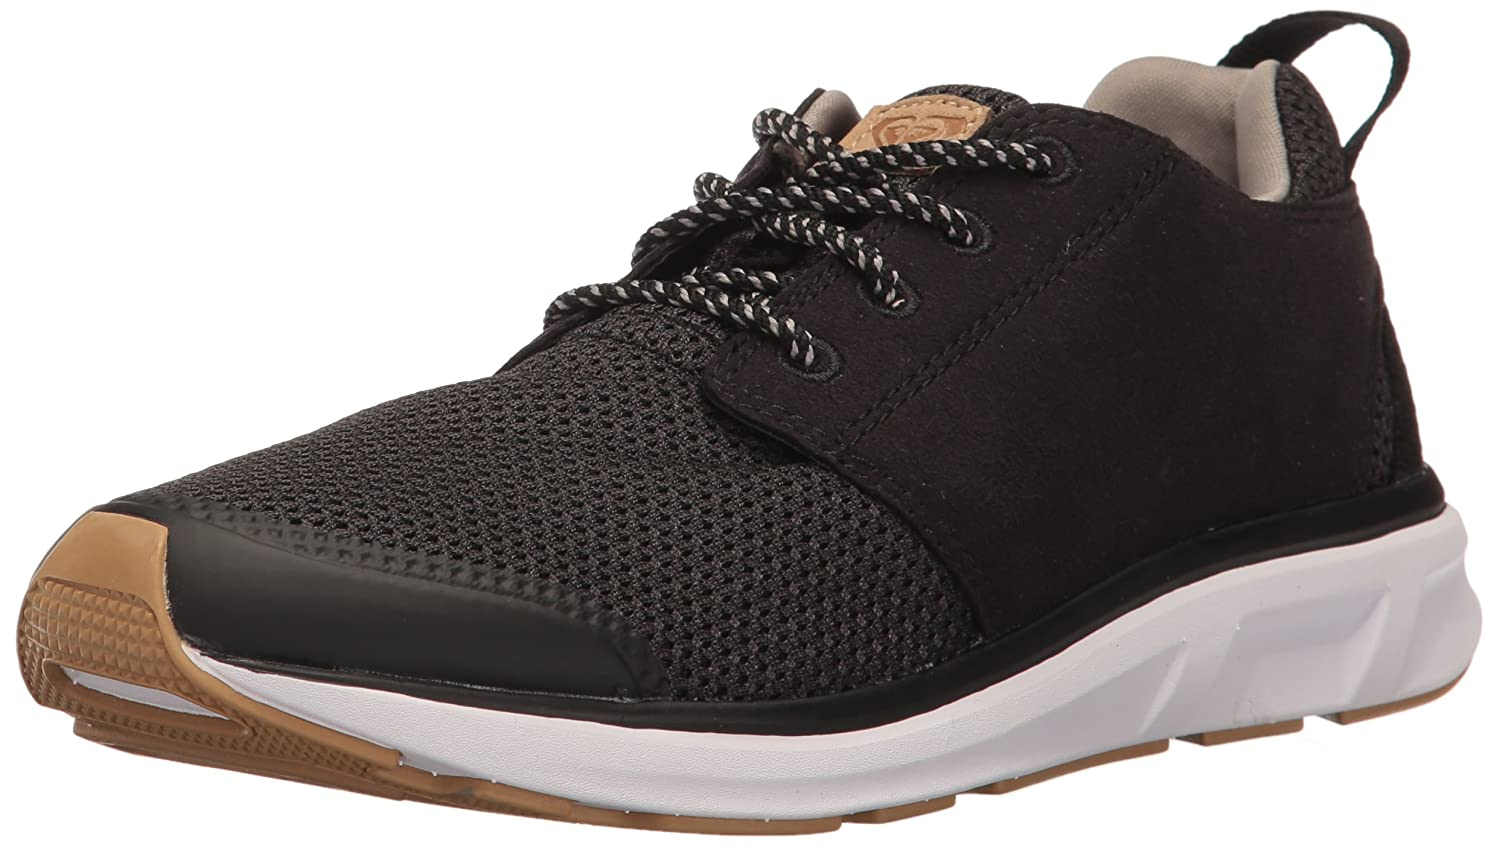 Roxy Women's Set Session Athletic Walking Shoe B01IORN5H0 6.5 B(M) US|Black